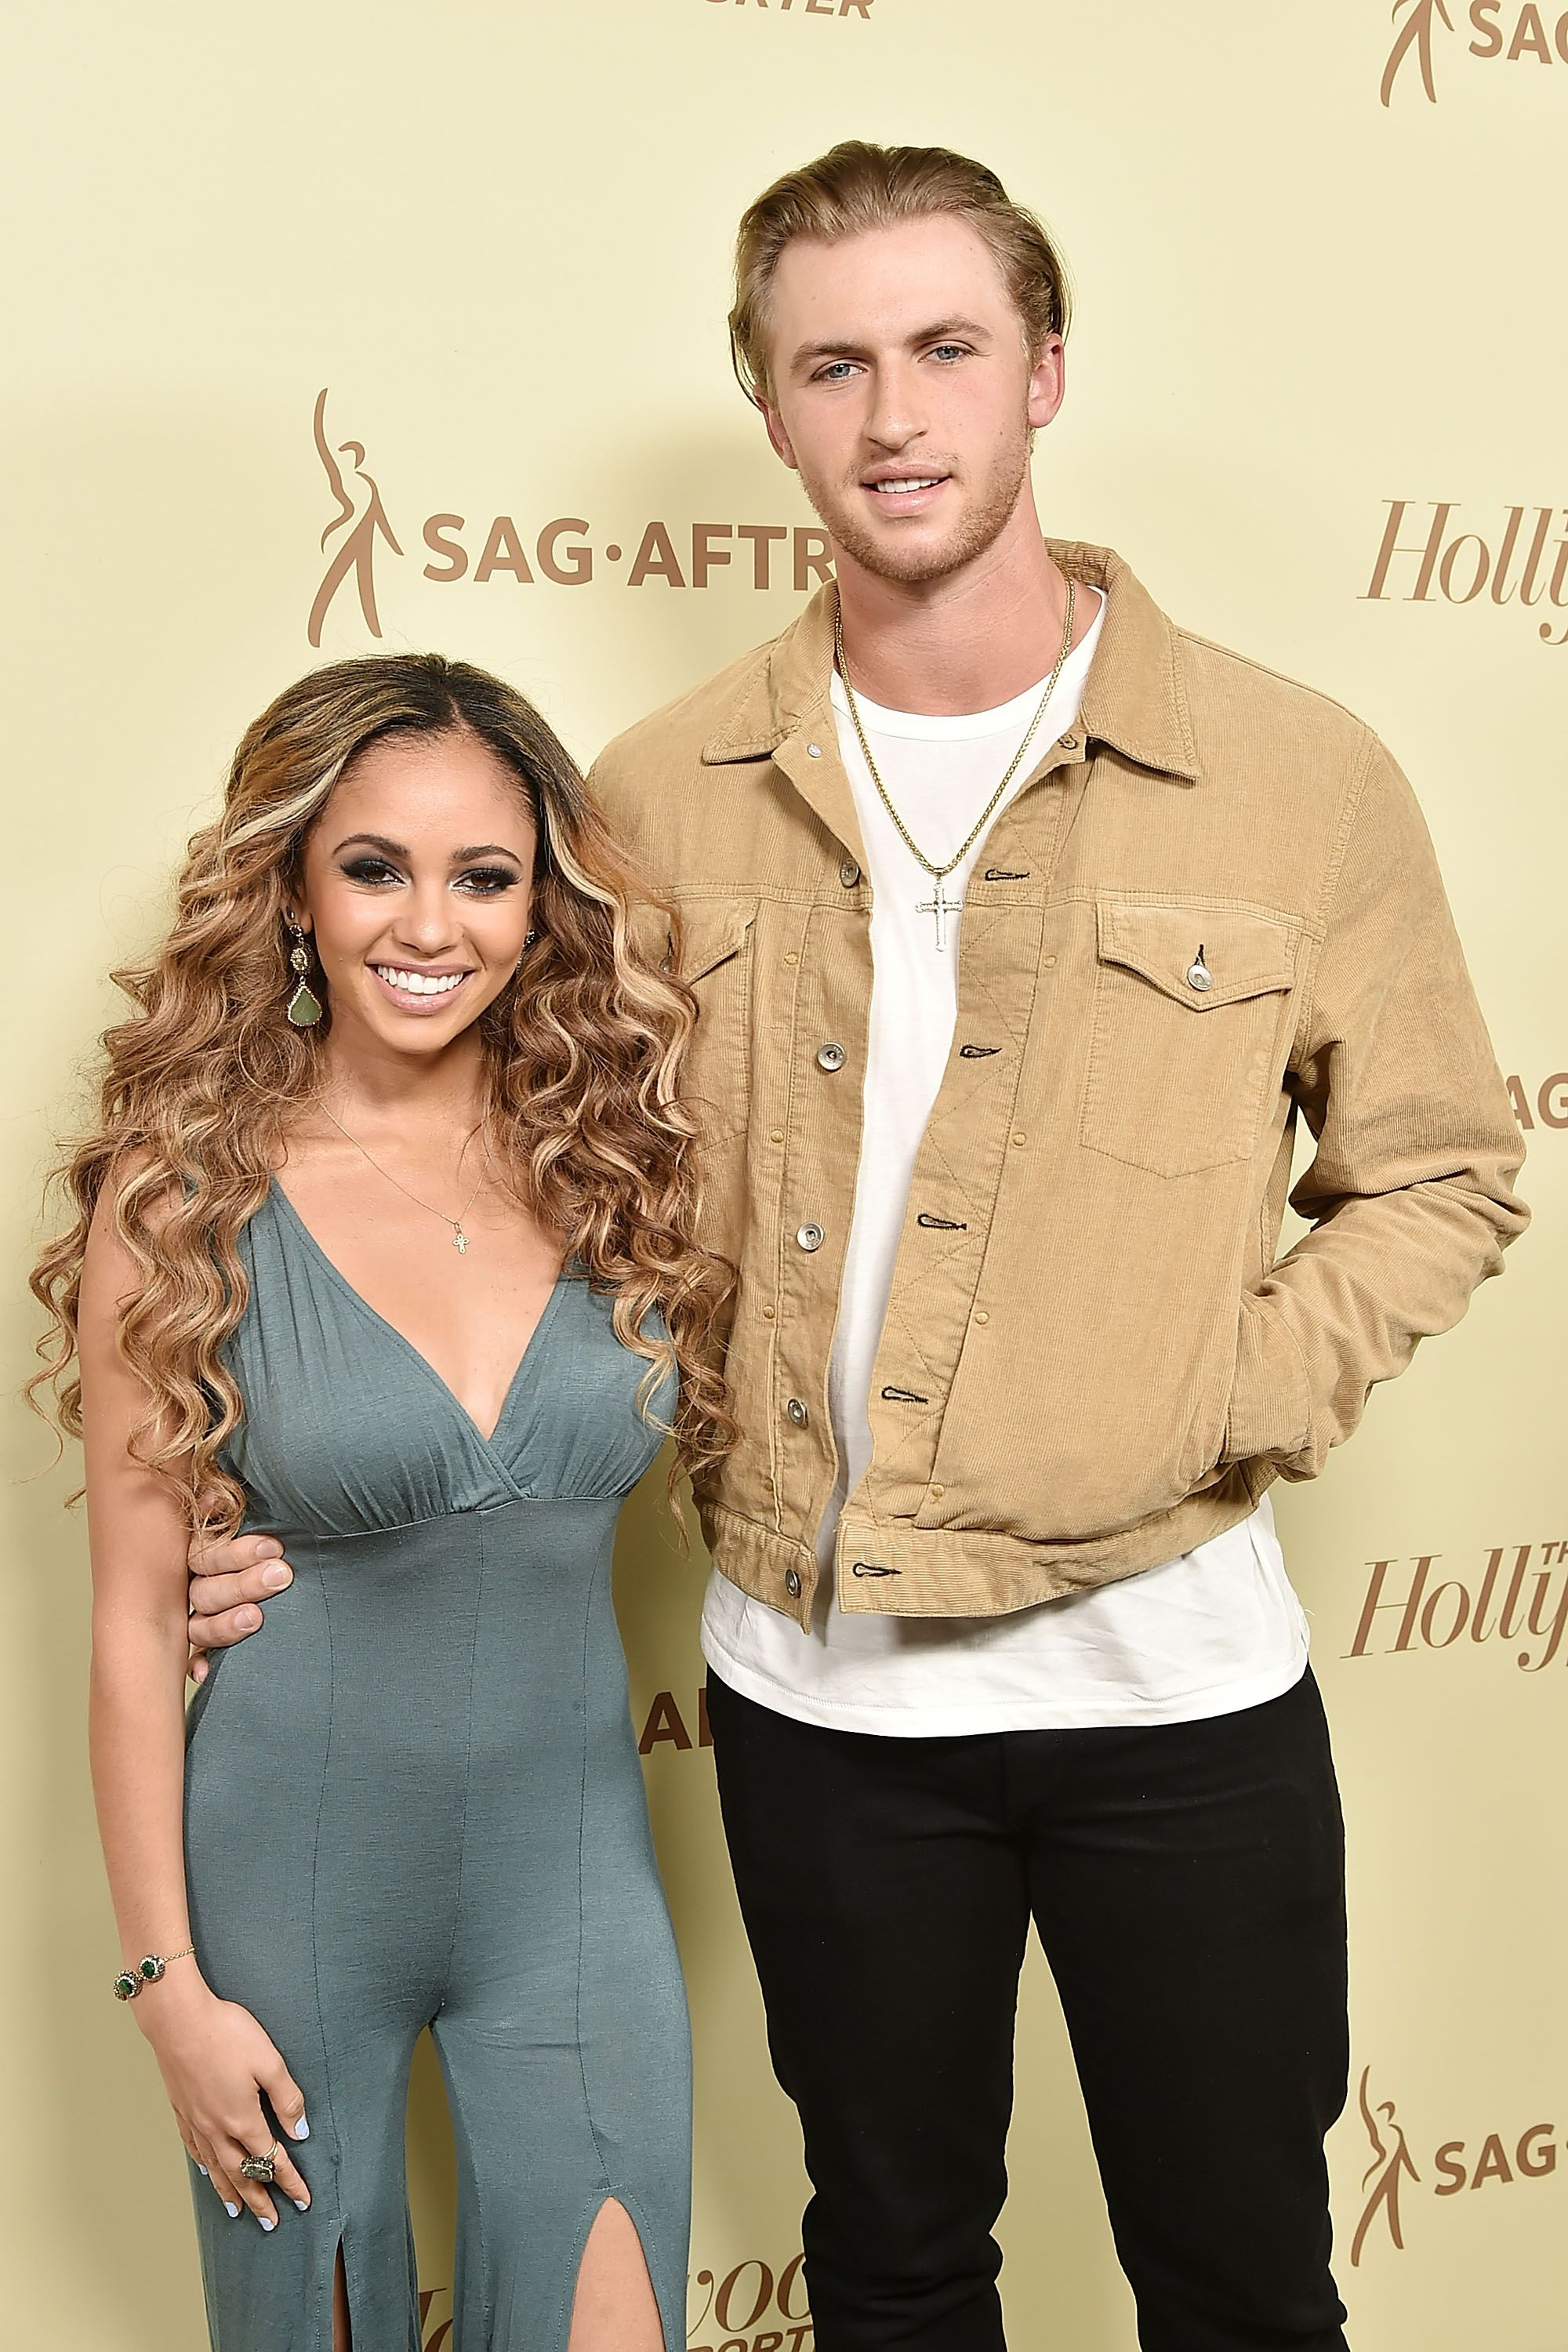 Vanessa Morgan and Michael Kopech attend The Hollywood Reporter And SAG-AFTRA Celebrate Emmy Award Contenders At Annual Nominees Night at Avra Beverly Hills Estiatorio on September 14, 2018 in Beverly Hills, California. | Source: Getty Images